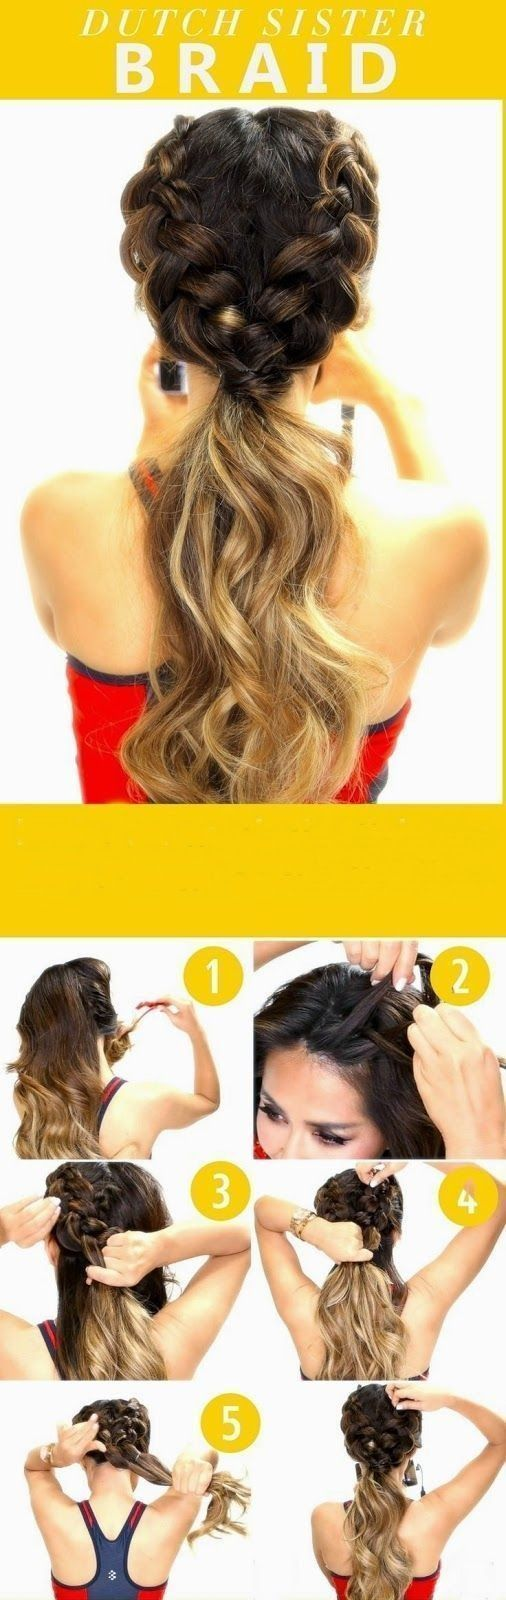 Back to School Outfits cool 10 Super-easy Trendy hairstyles for school. Quick, Easy, Cute and Simple Step By Step Girls and Teens Hairstyles for Back to School. Great For Medium Hair, Short, Curly, Messy or Formal Looks. Great For the Lazy Girl Too!!